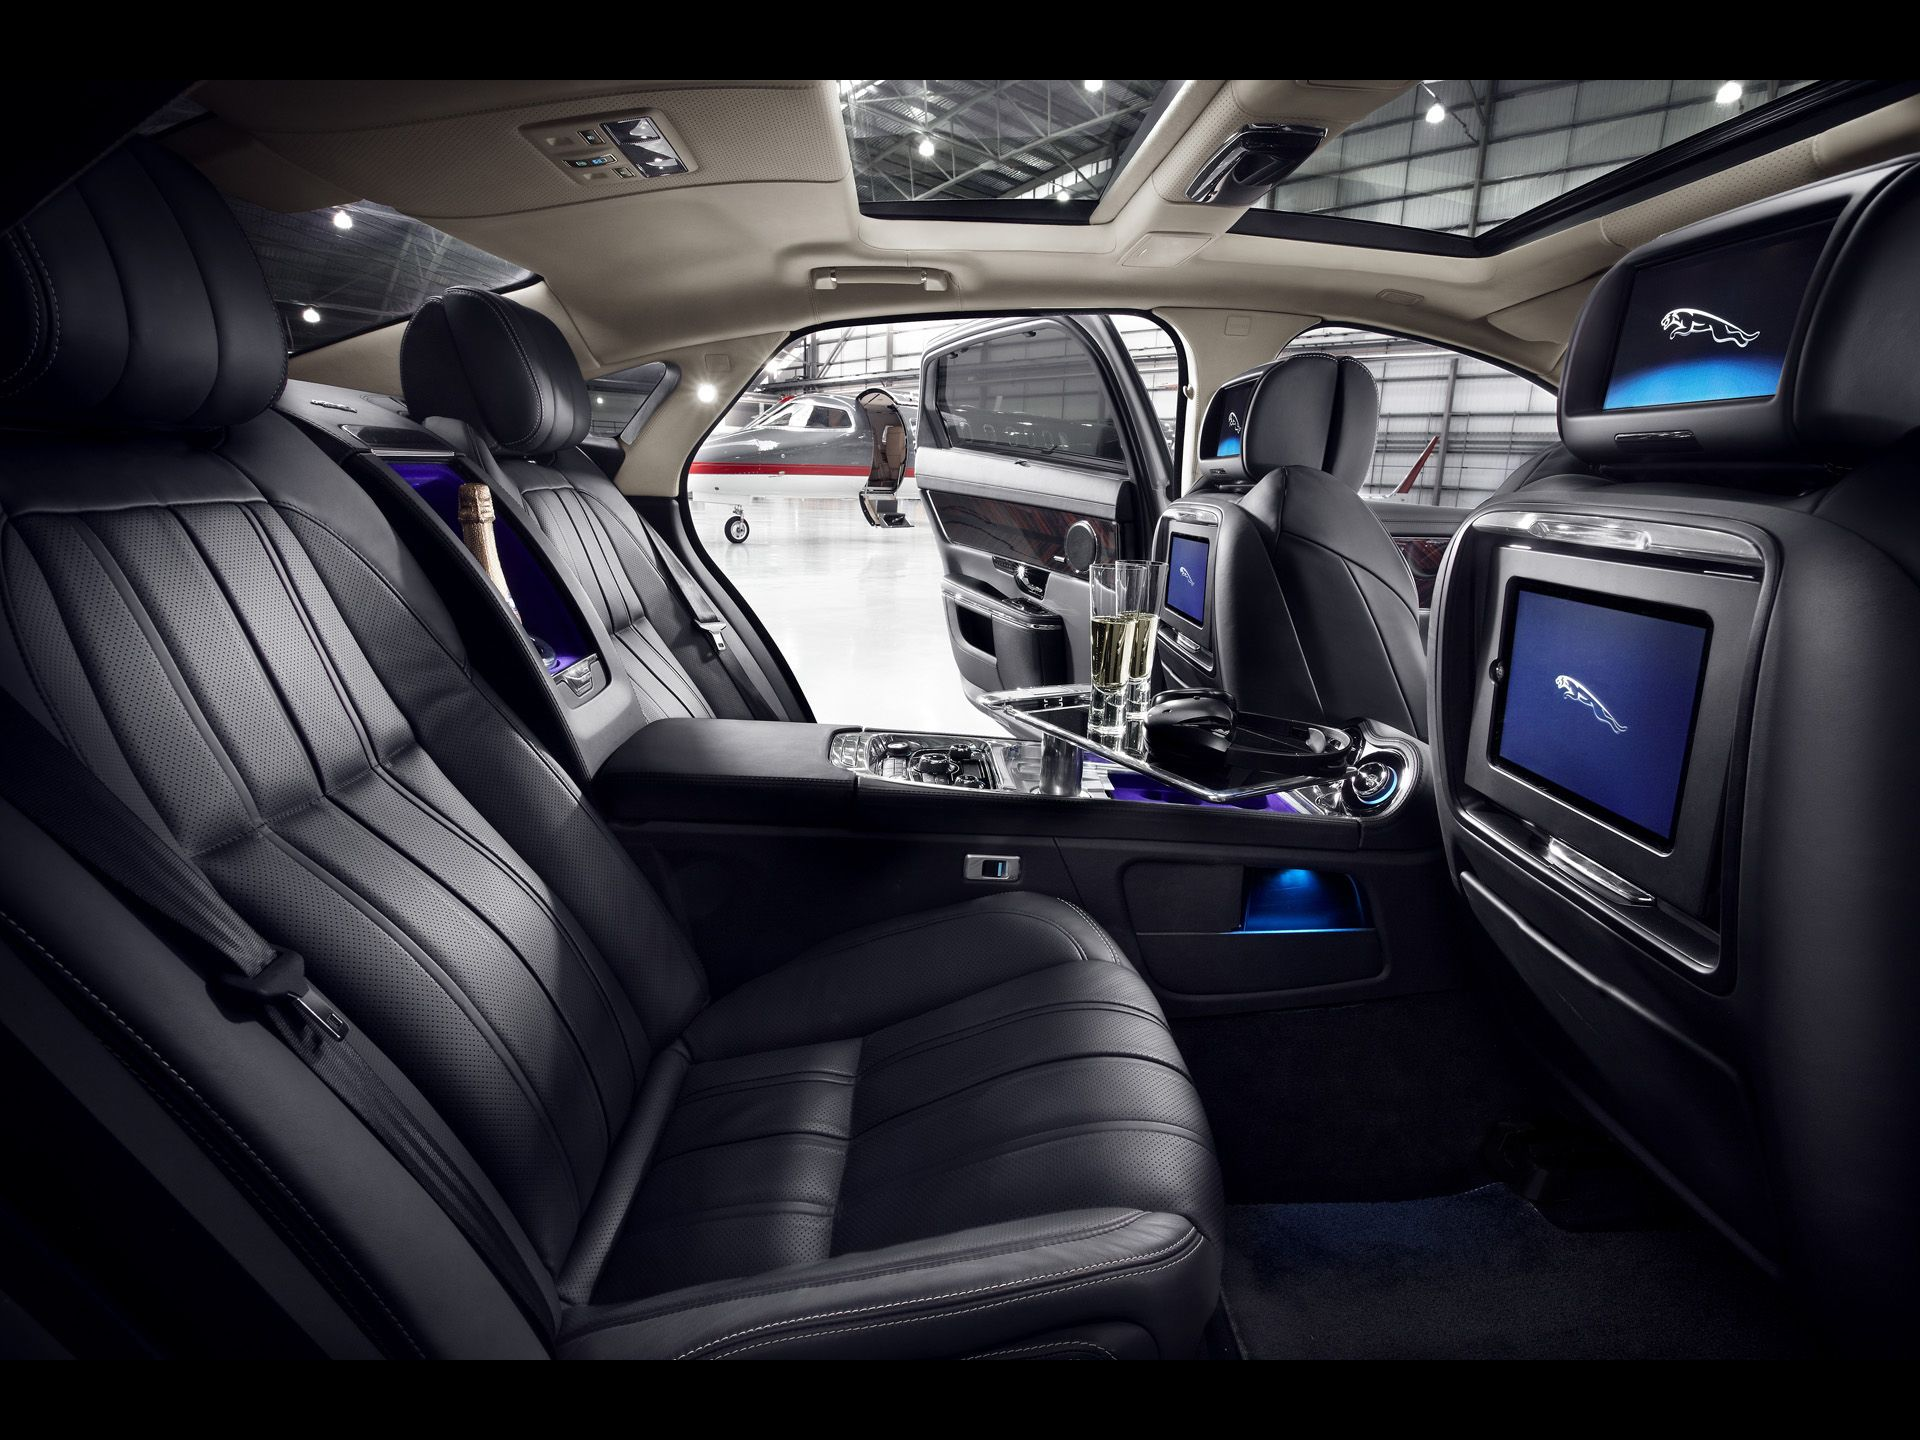 2012 Jaguar Xj Ultimate Interior 1